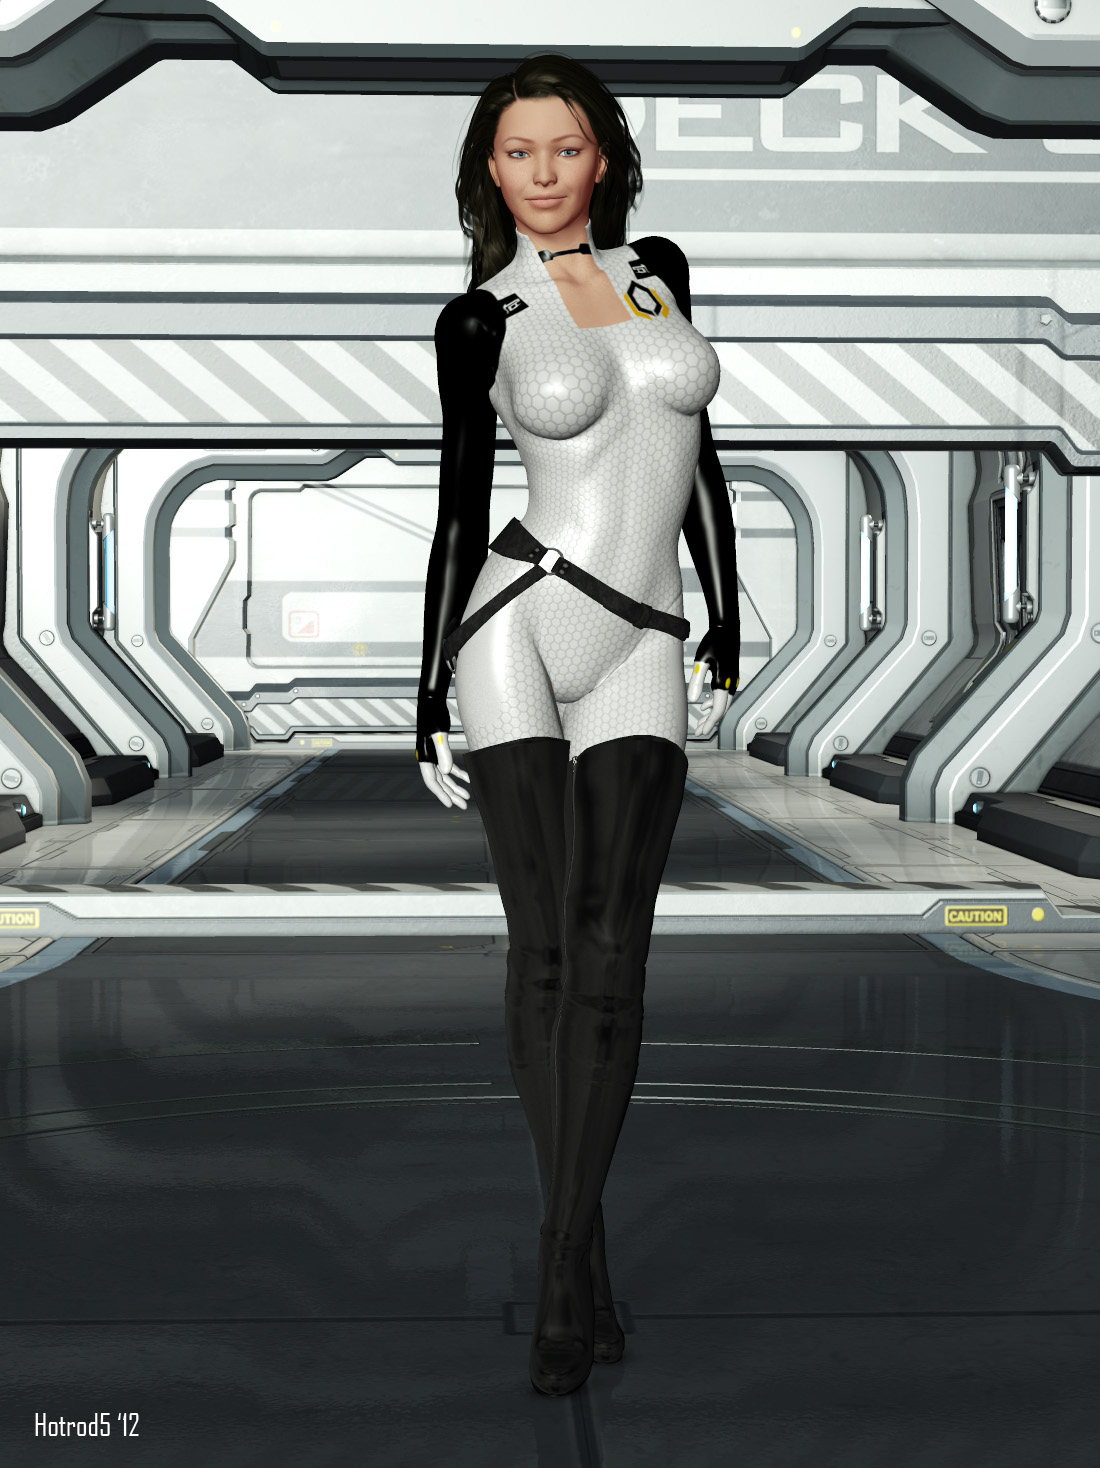 Miranda Lawson by hotrod5